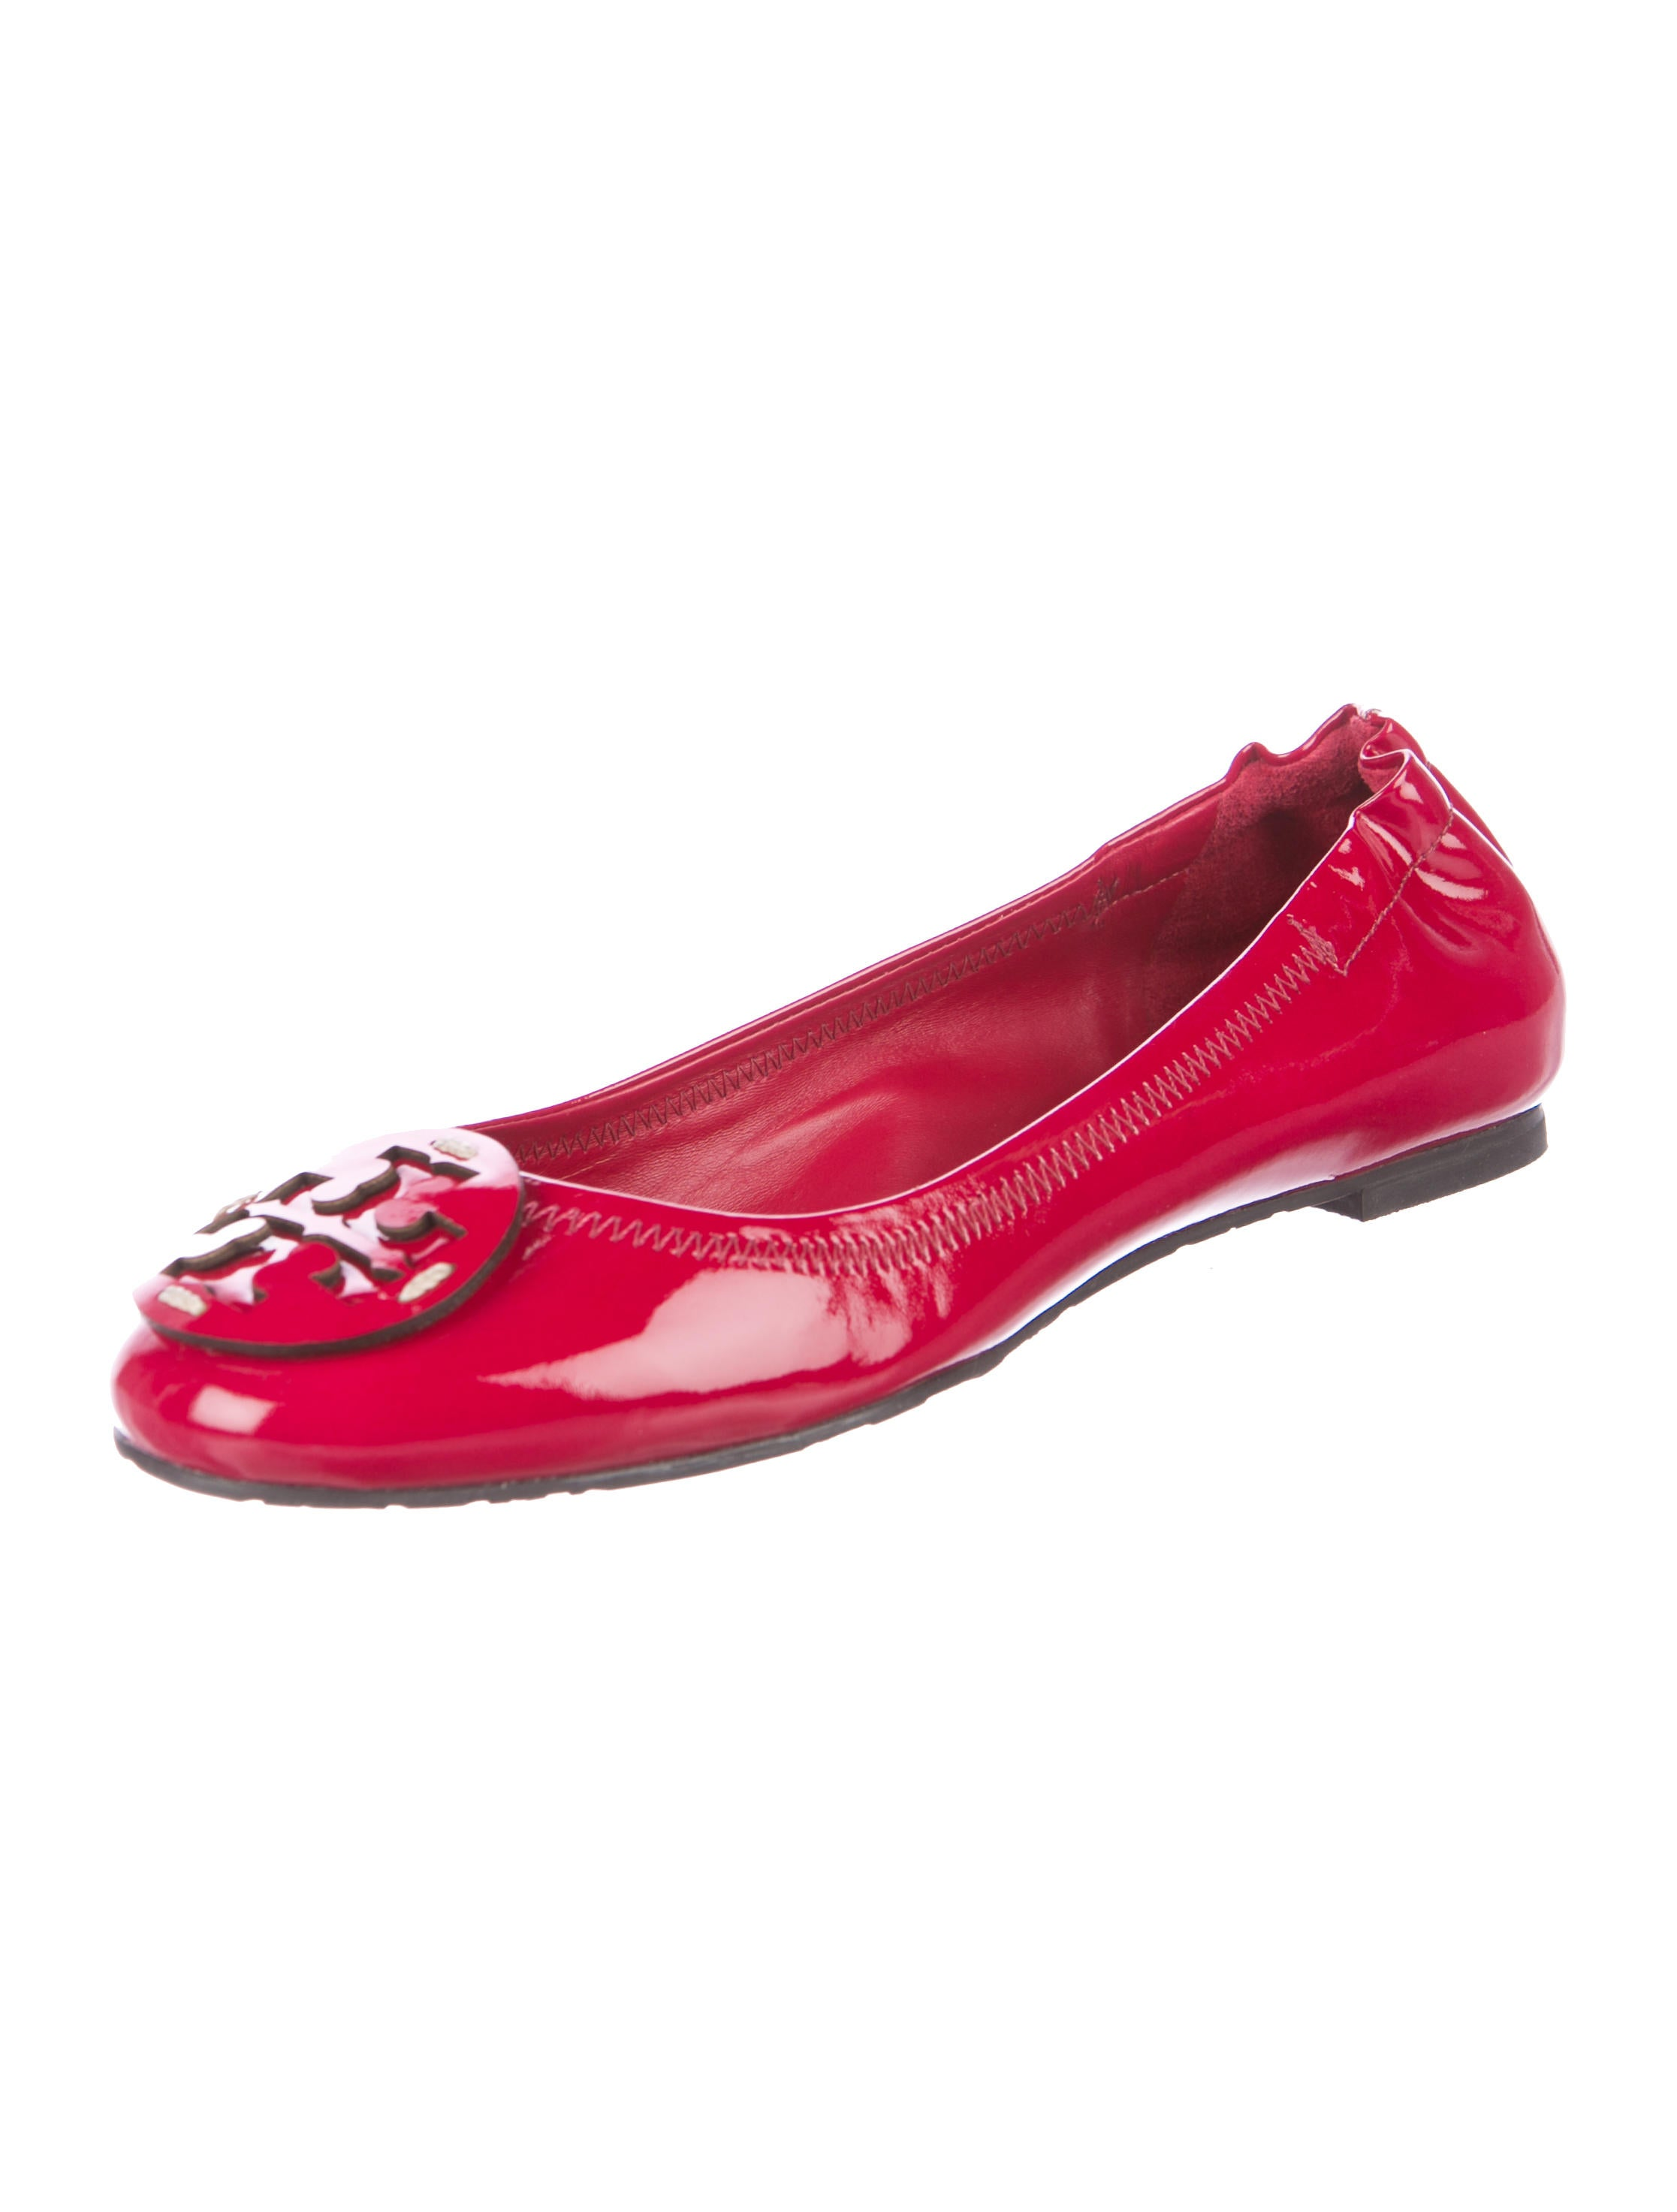 Tory Burch Patent Leather Reva Ballet Flat - Shoes ...